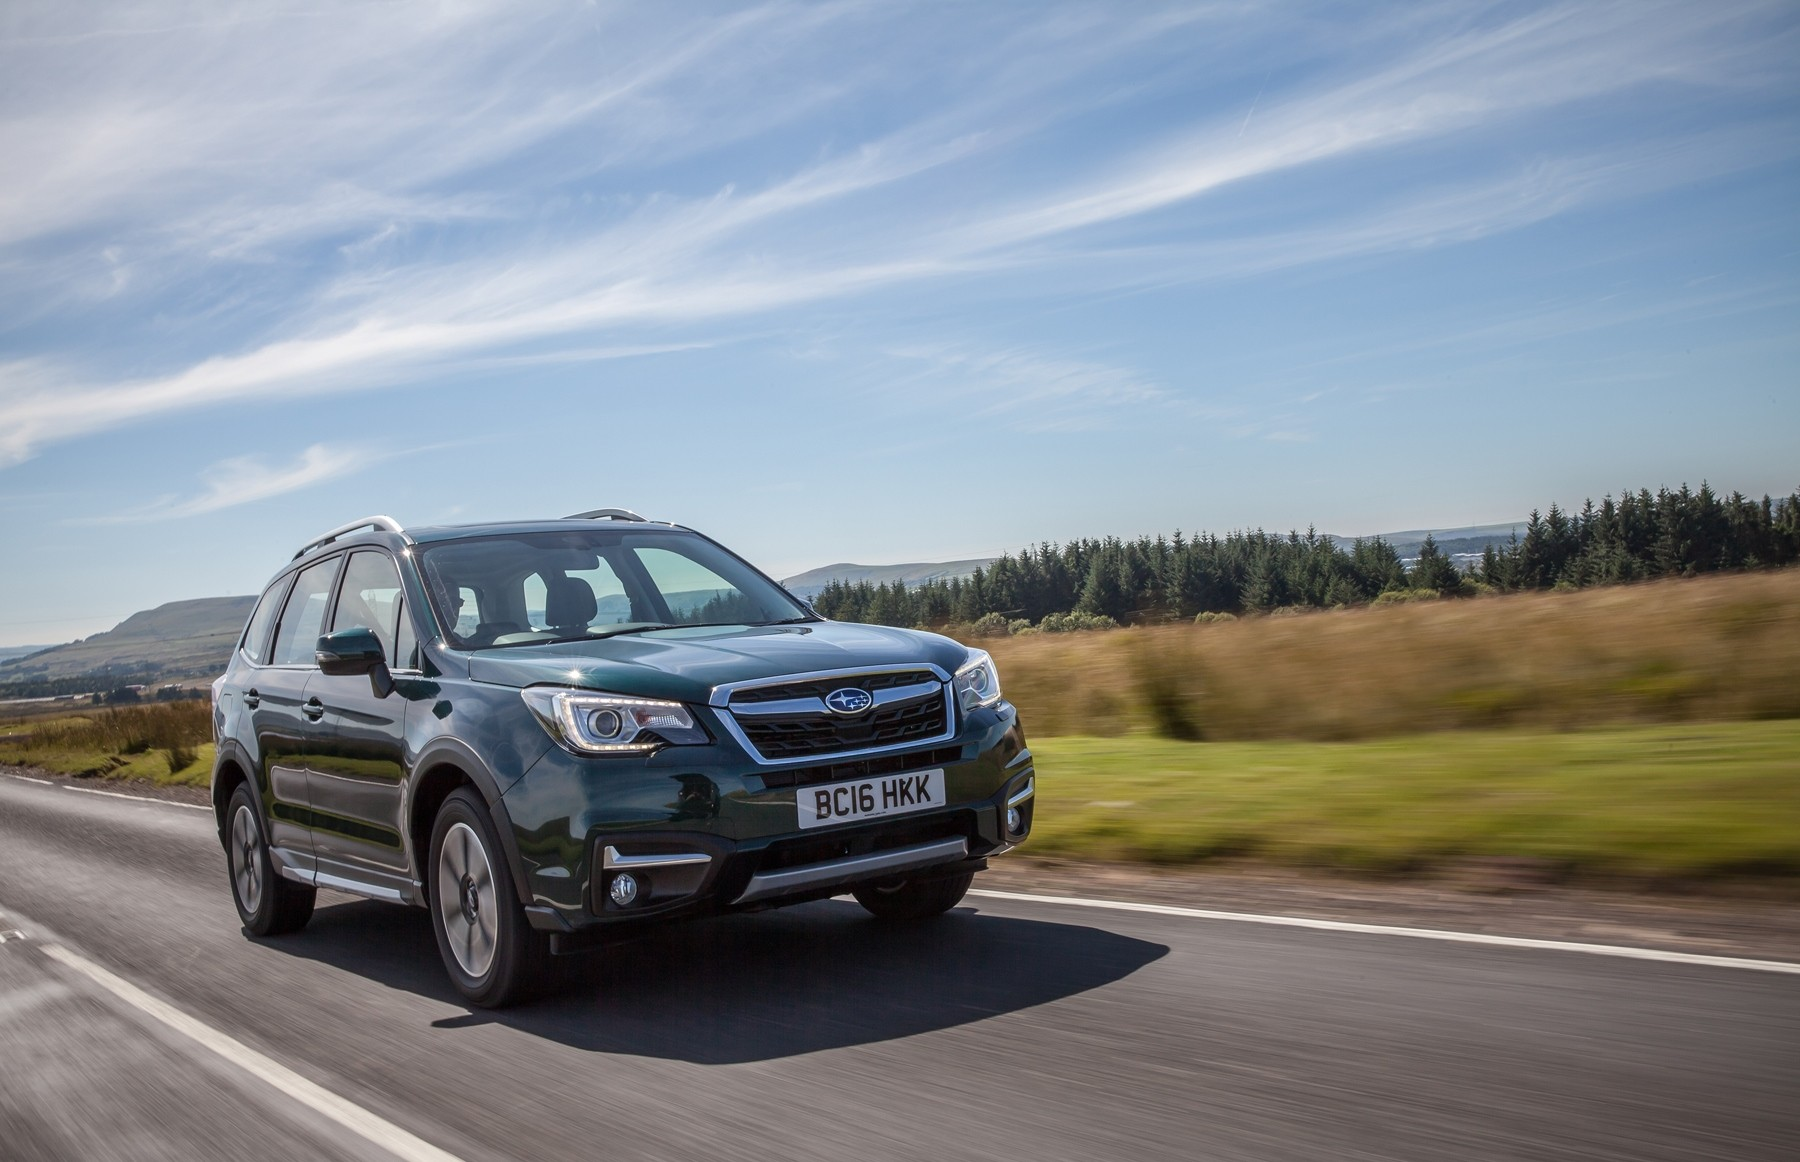 2016 Subaru Forester Commercial Making Memories